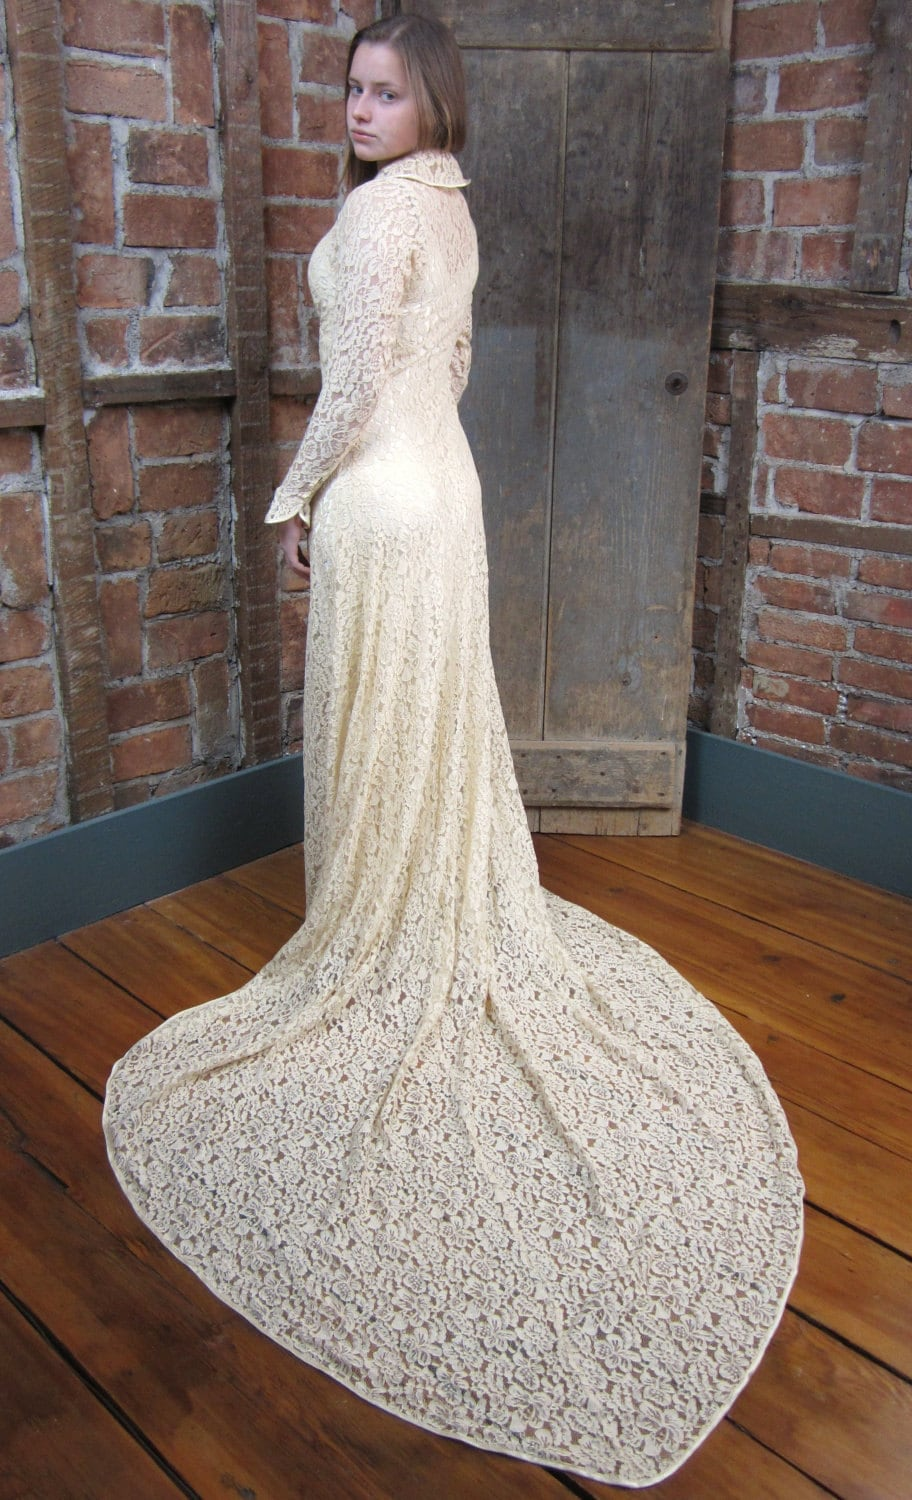 1930's Lace Wedding Gown Dress Bias cut Button Front Lace